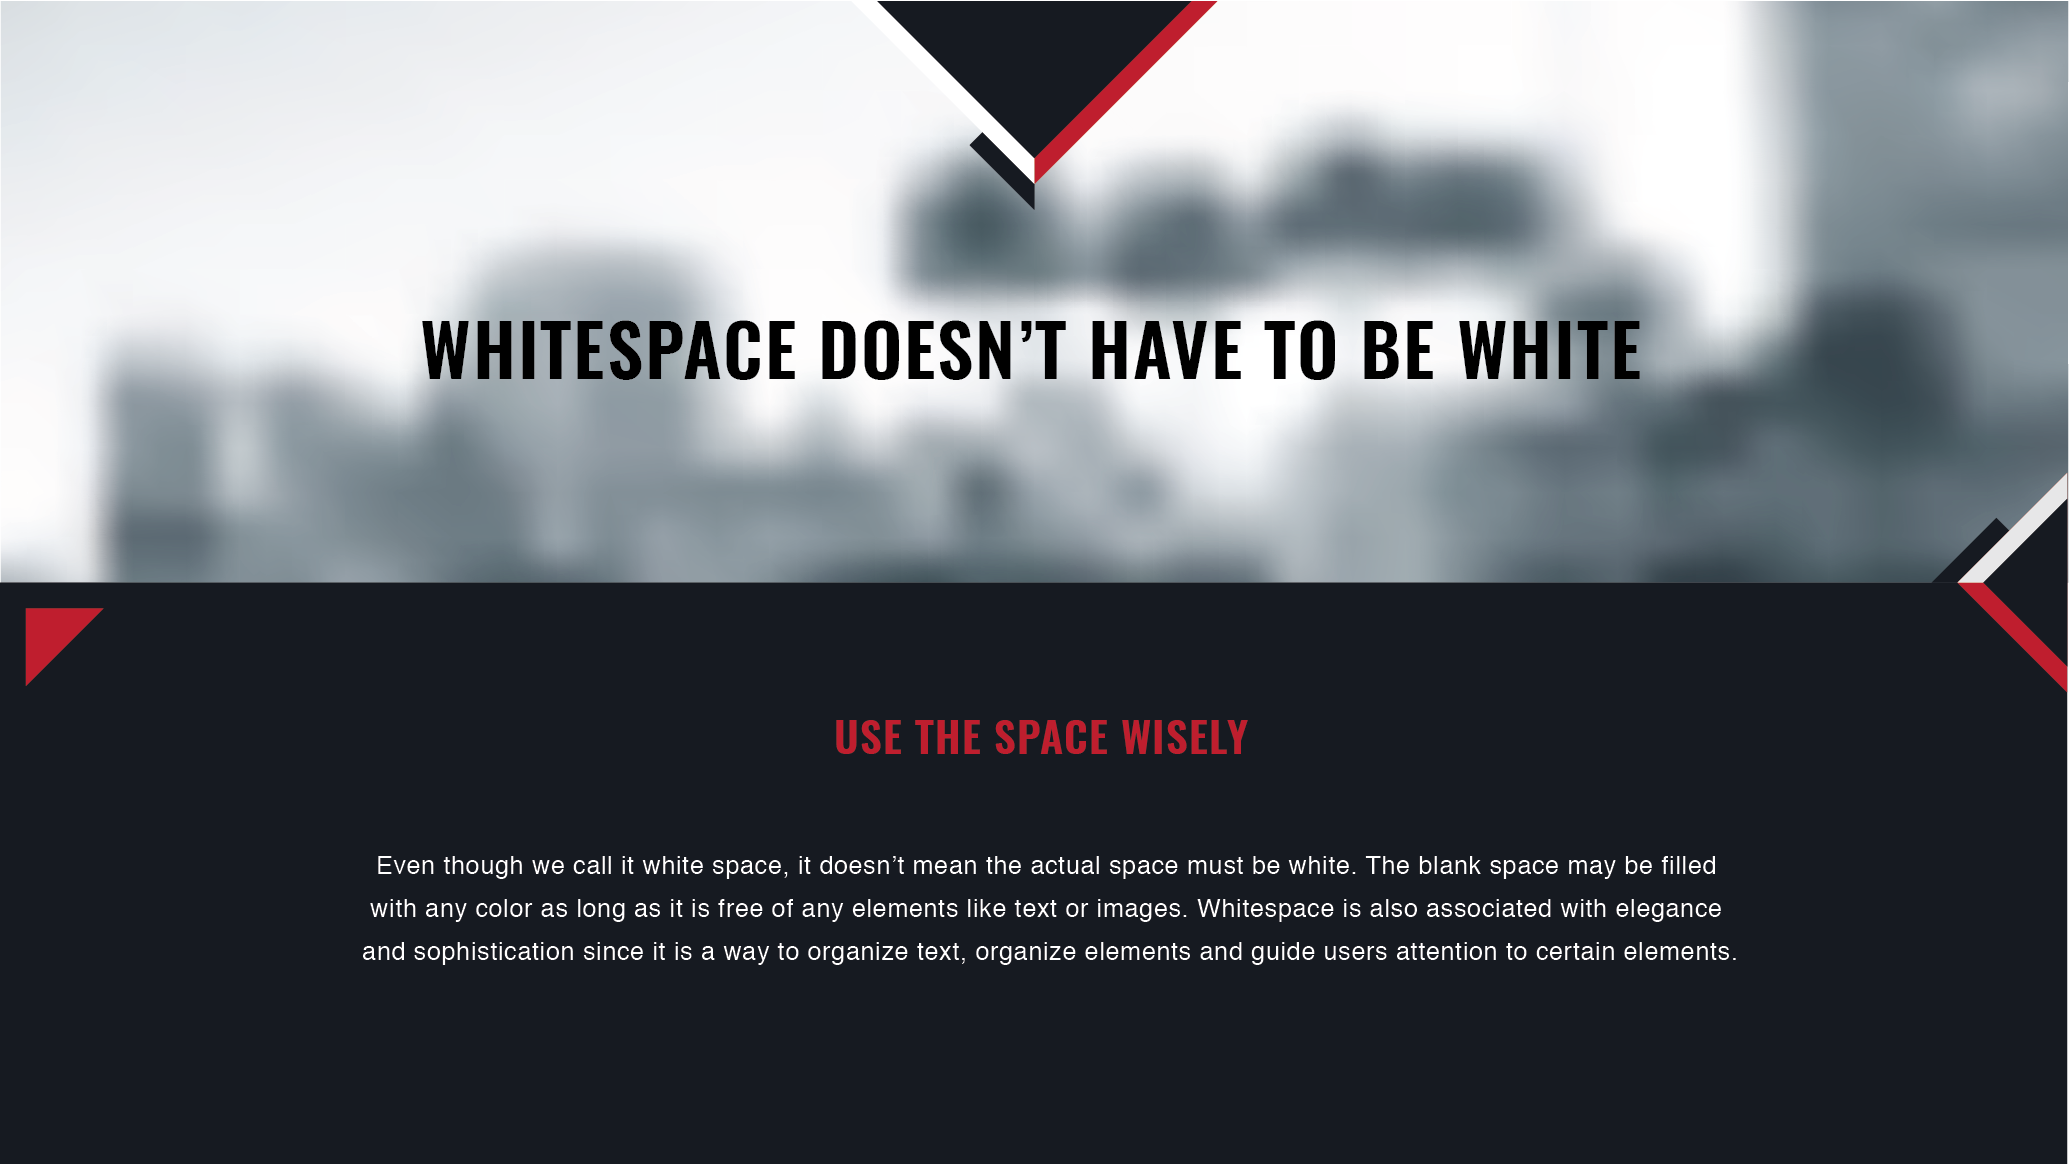 Whitespace does not have to be white.